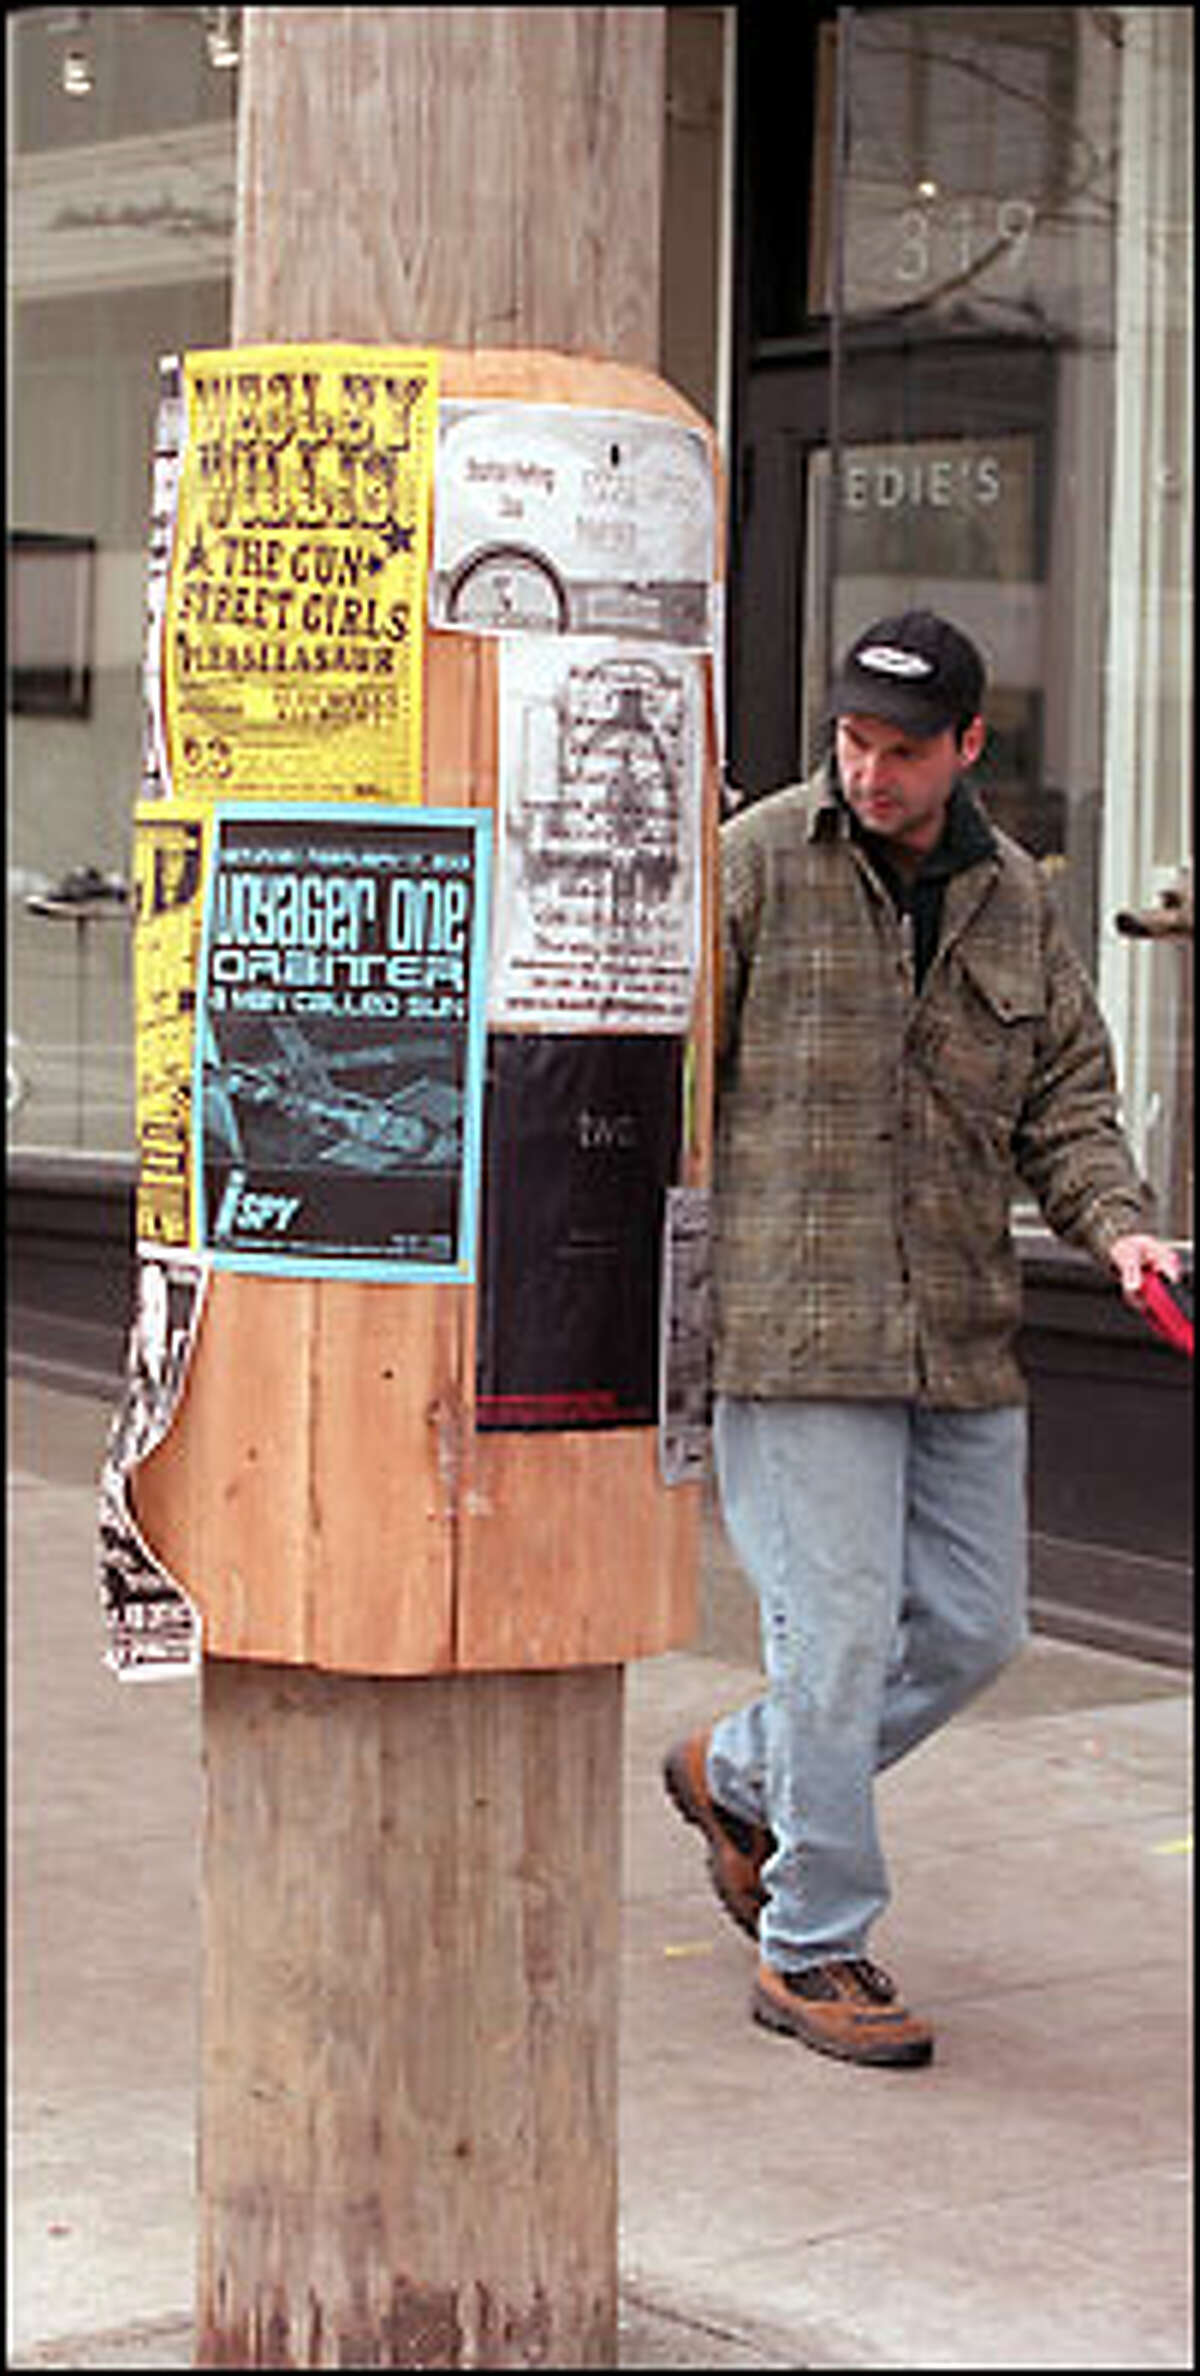 Troy Curley walks past a new kiosk on East Pine in Seattle. The city has been installing public kiosks for about a decade, but questions linger over whether they're actually legal. Now the City Council plans to settle the issue once and for all.